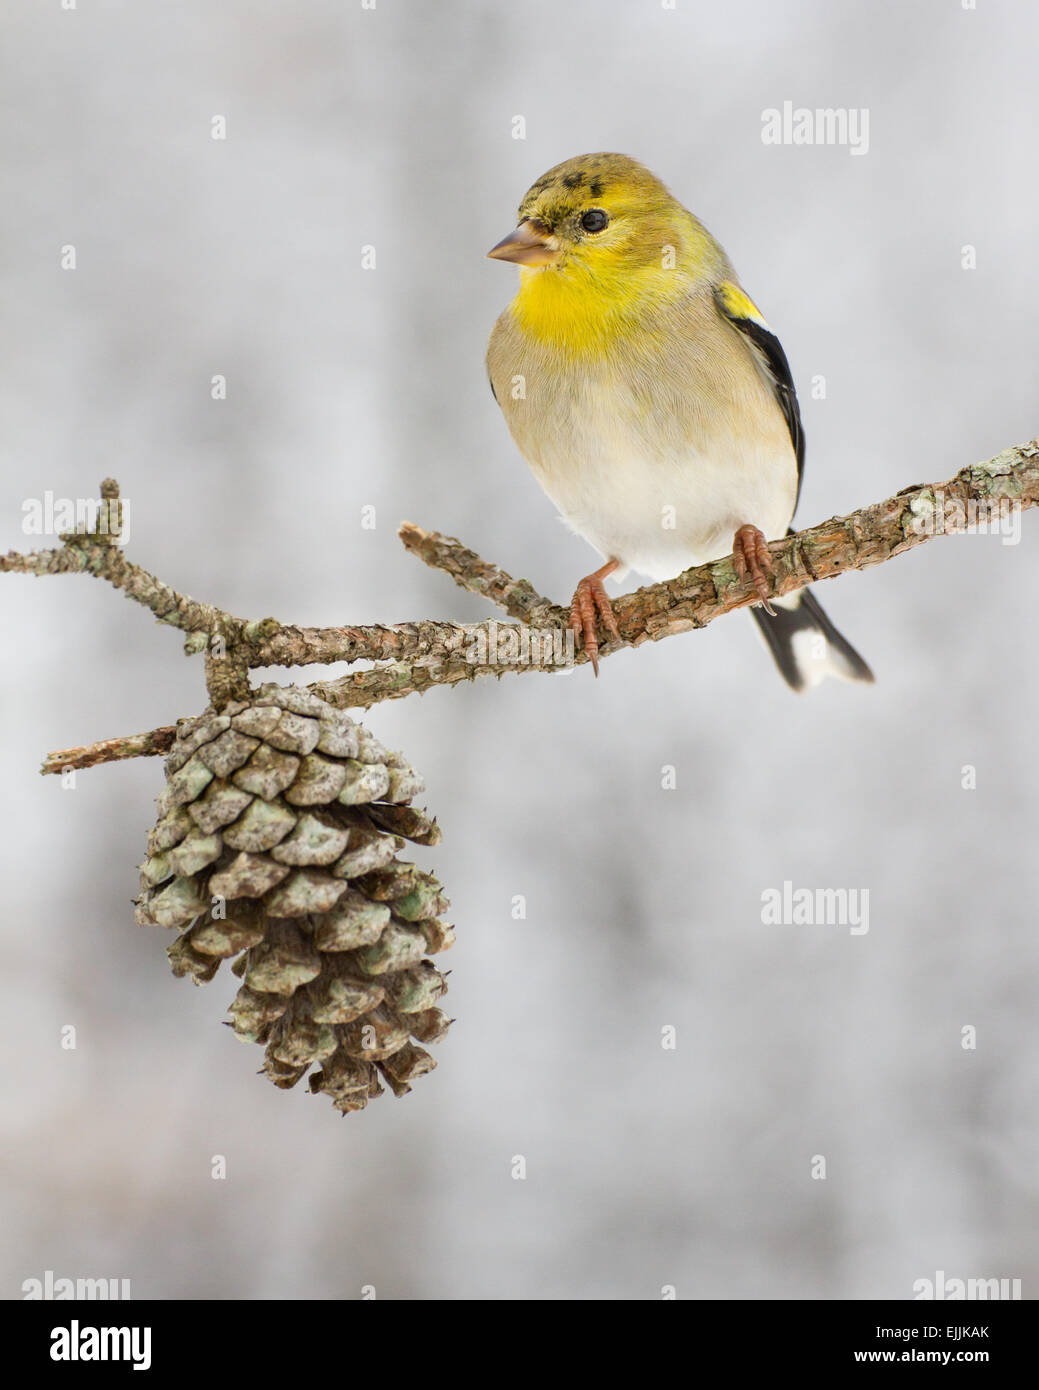 An American gold finch perched after a snow storm in North Carolina. - Stock Image